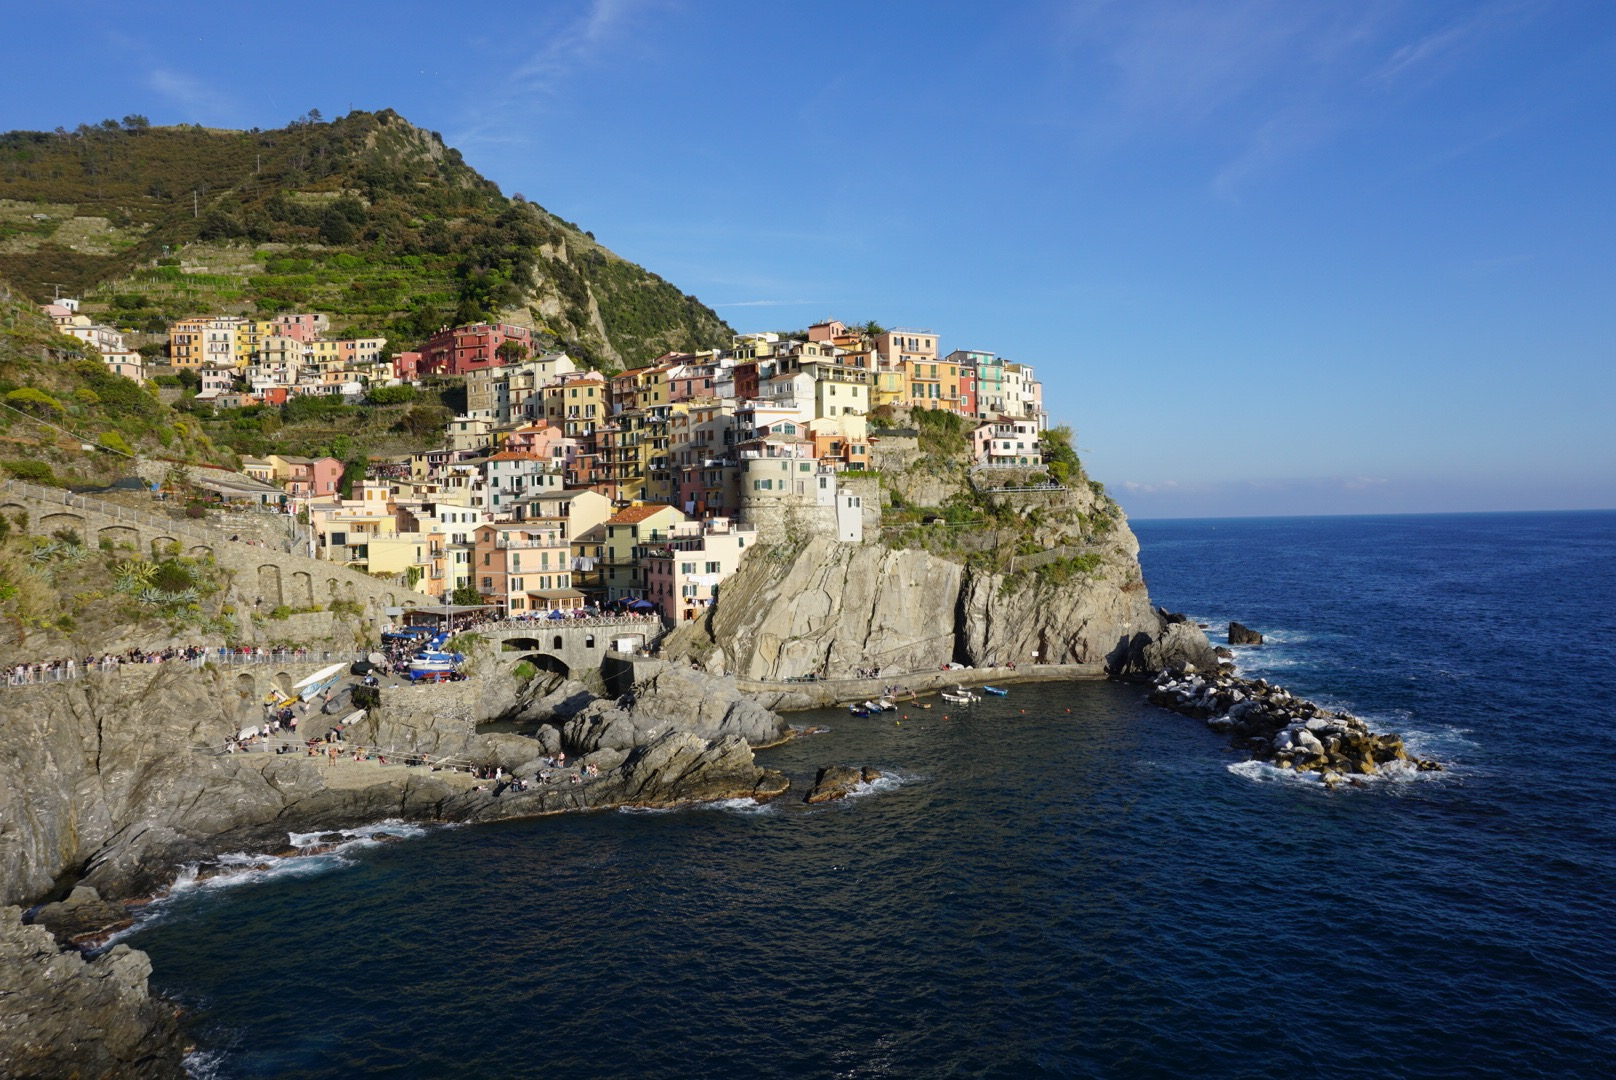 The Final Verdict on Cinque Terre